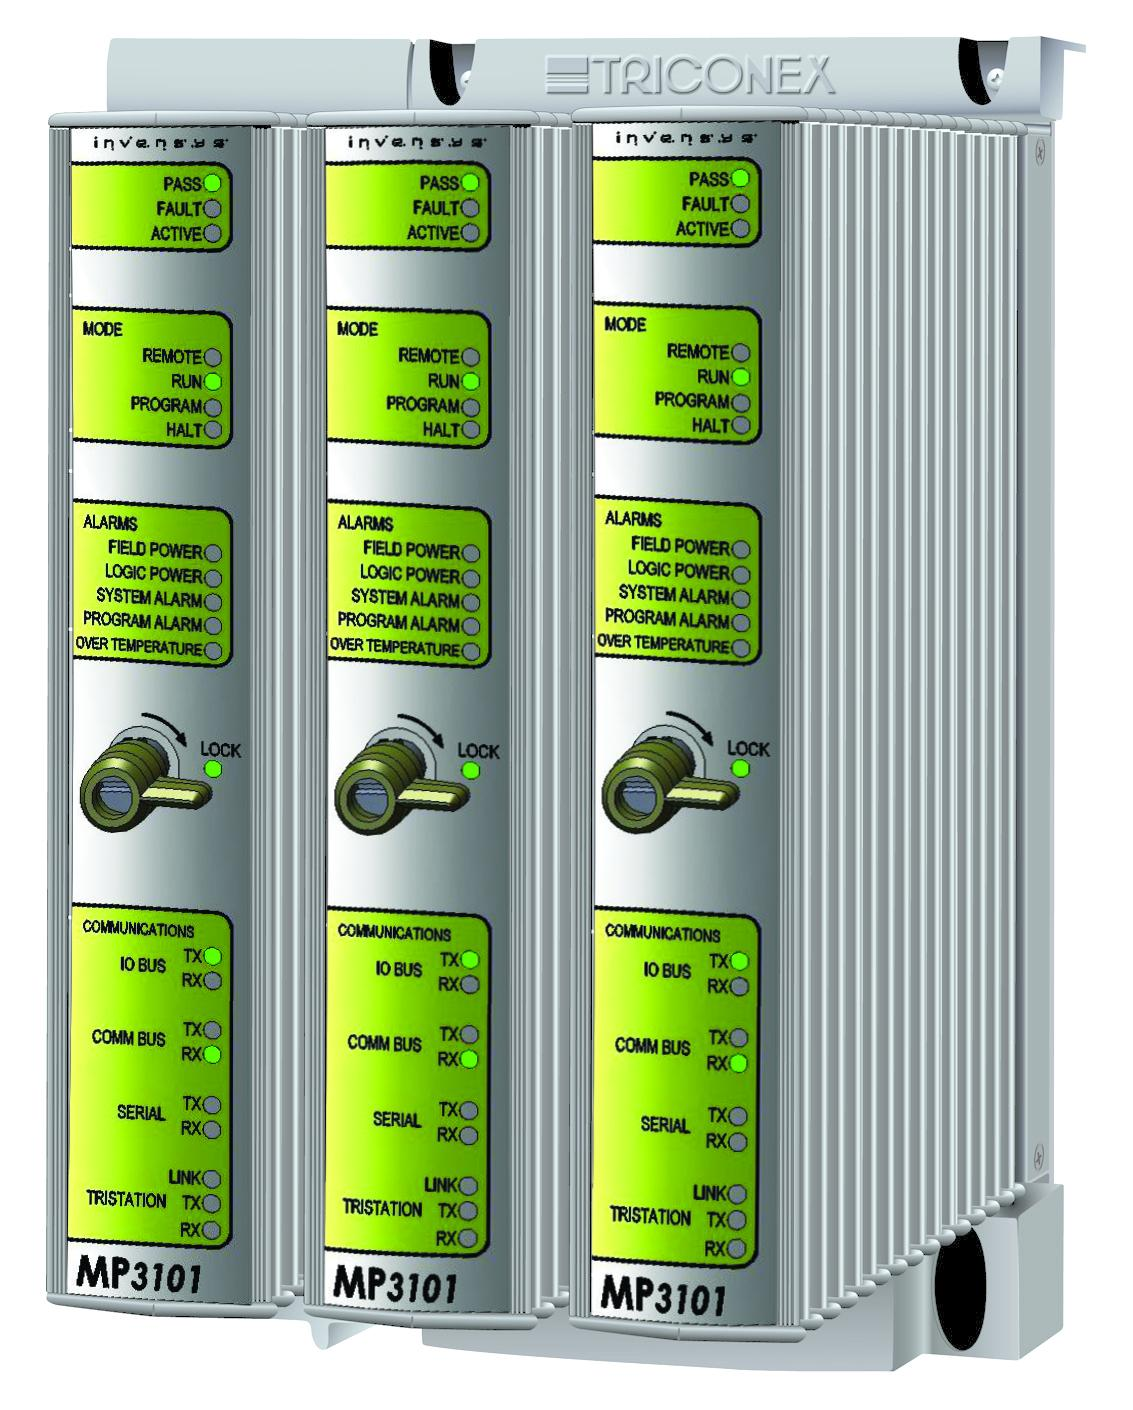 Now featuring embedded OPC Universal Architecture communication integration, the Trident Safety System offers greater connectivity with third-party systems